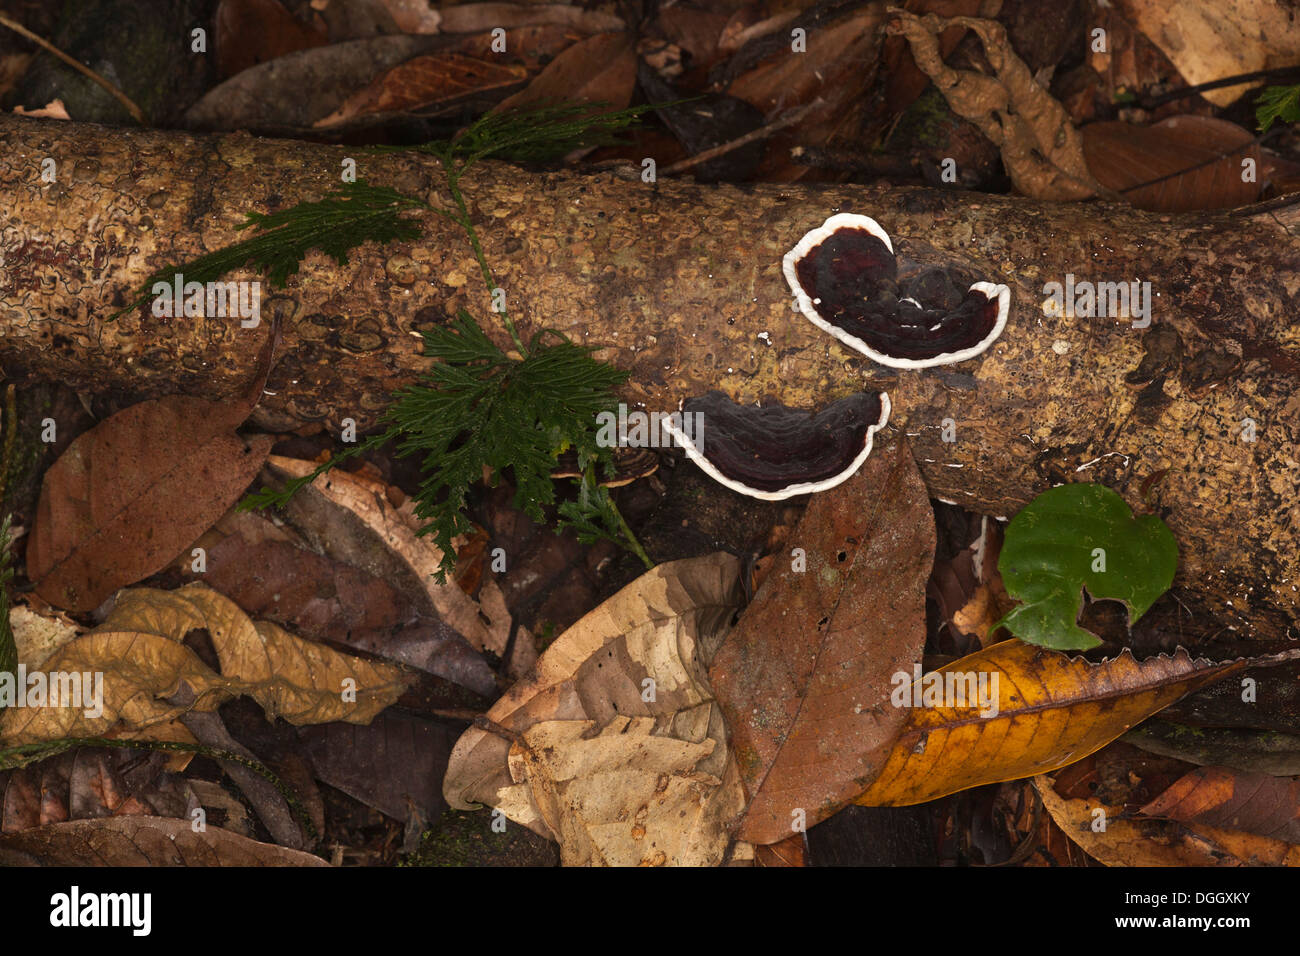 Forest floor ecosystem with bracket fungus growing on a dead tree in an undisturbed lowland tropical rainforest - Stock Image